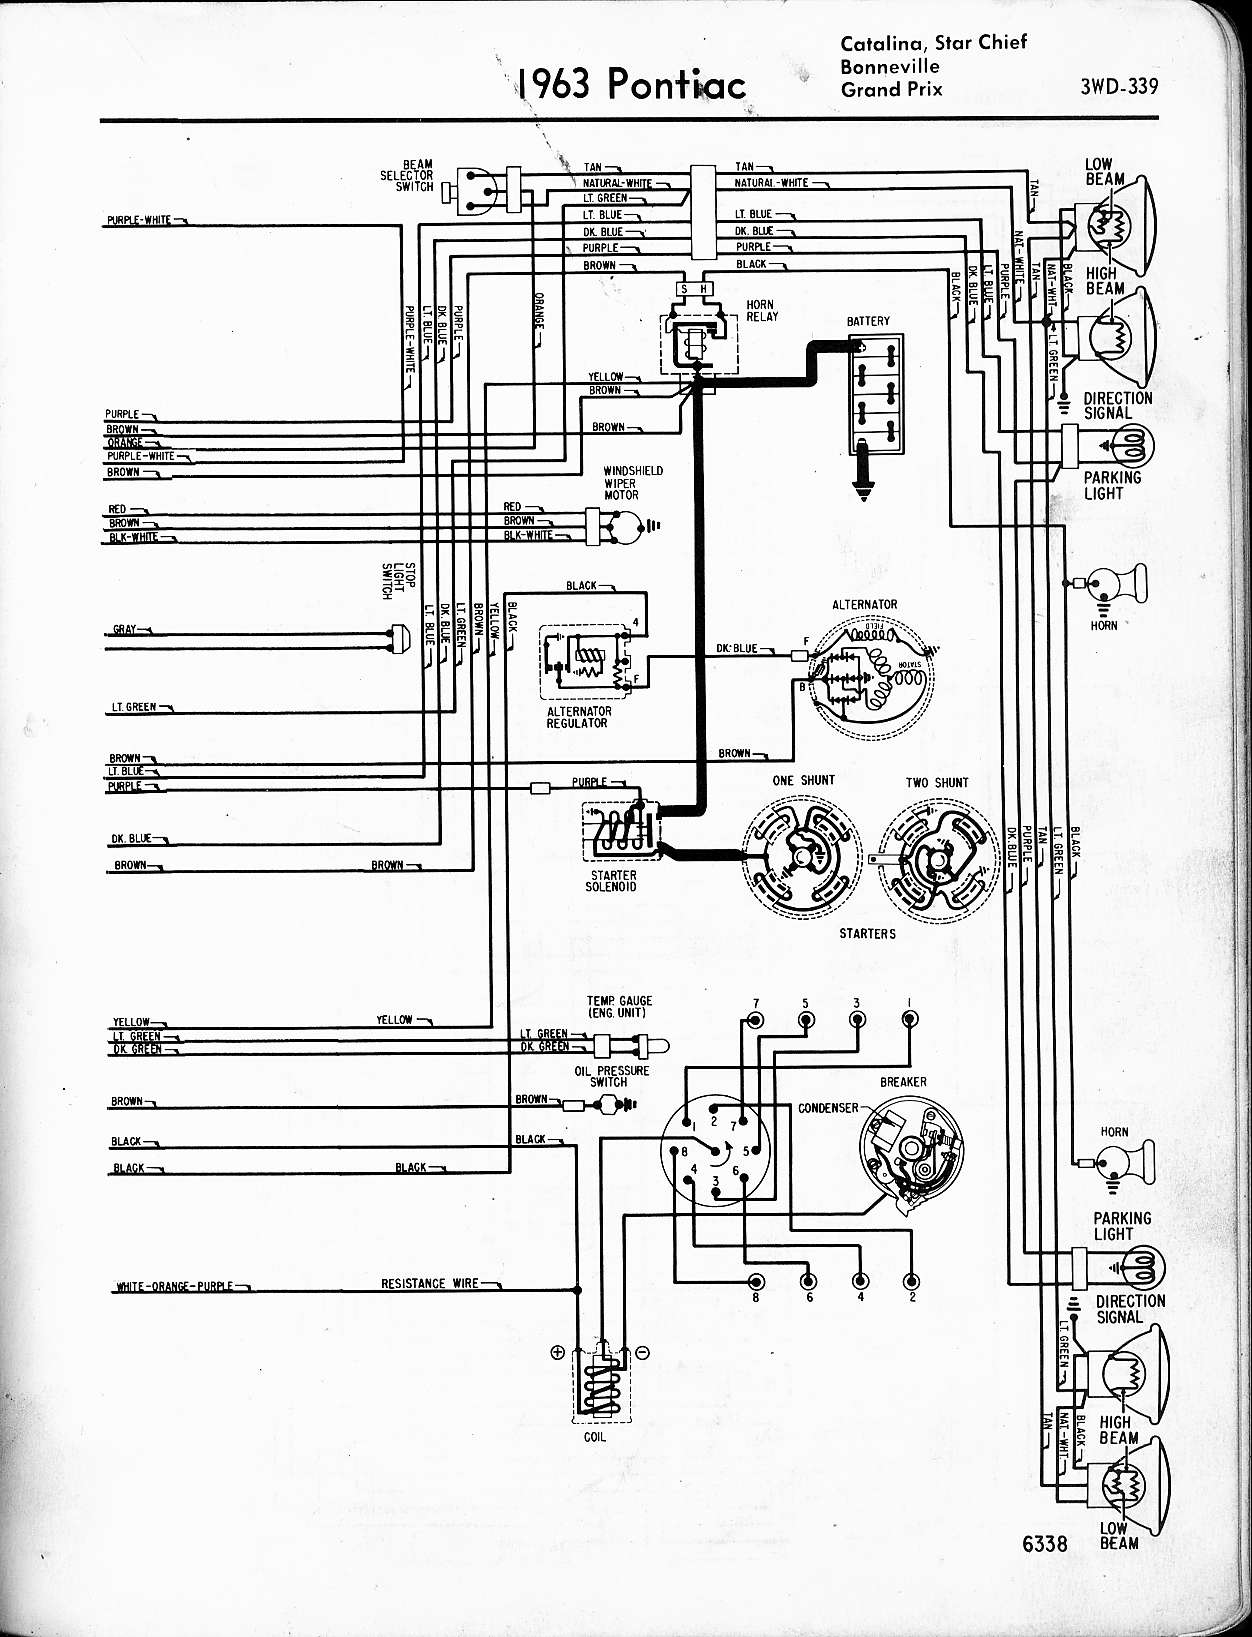 MWire5765 339 wallace racing wiring diagrams 2002 pontiac bonneville wiring diagram at crackthecode.co